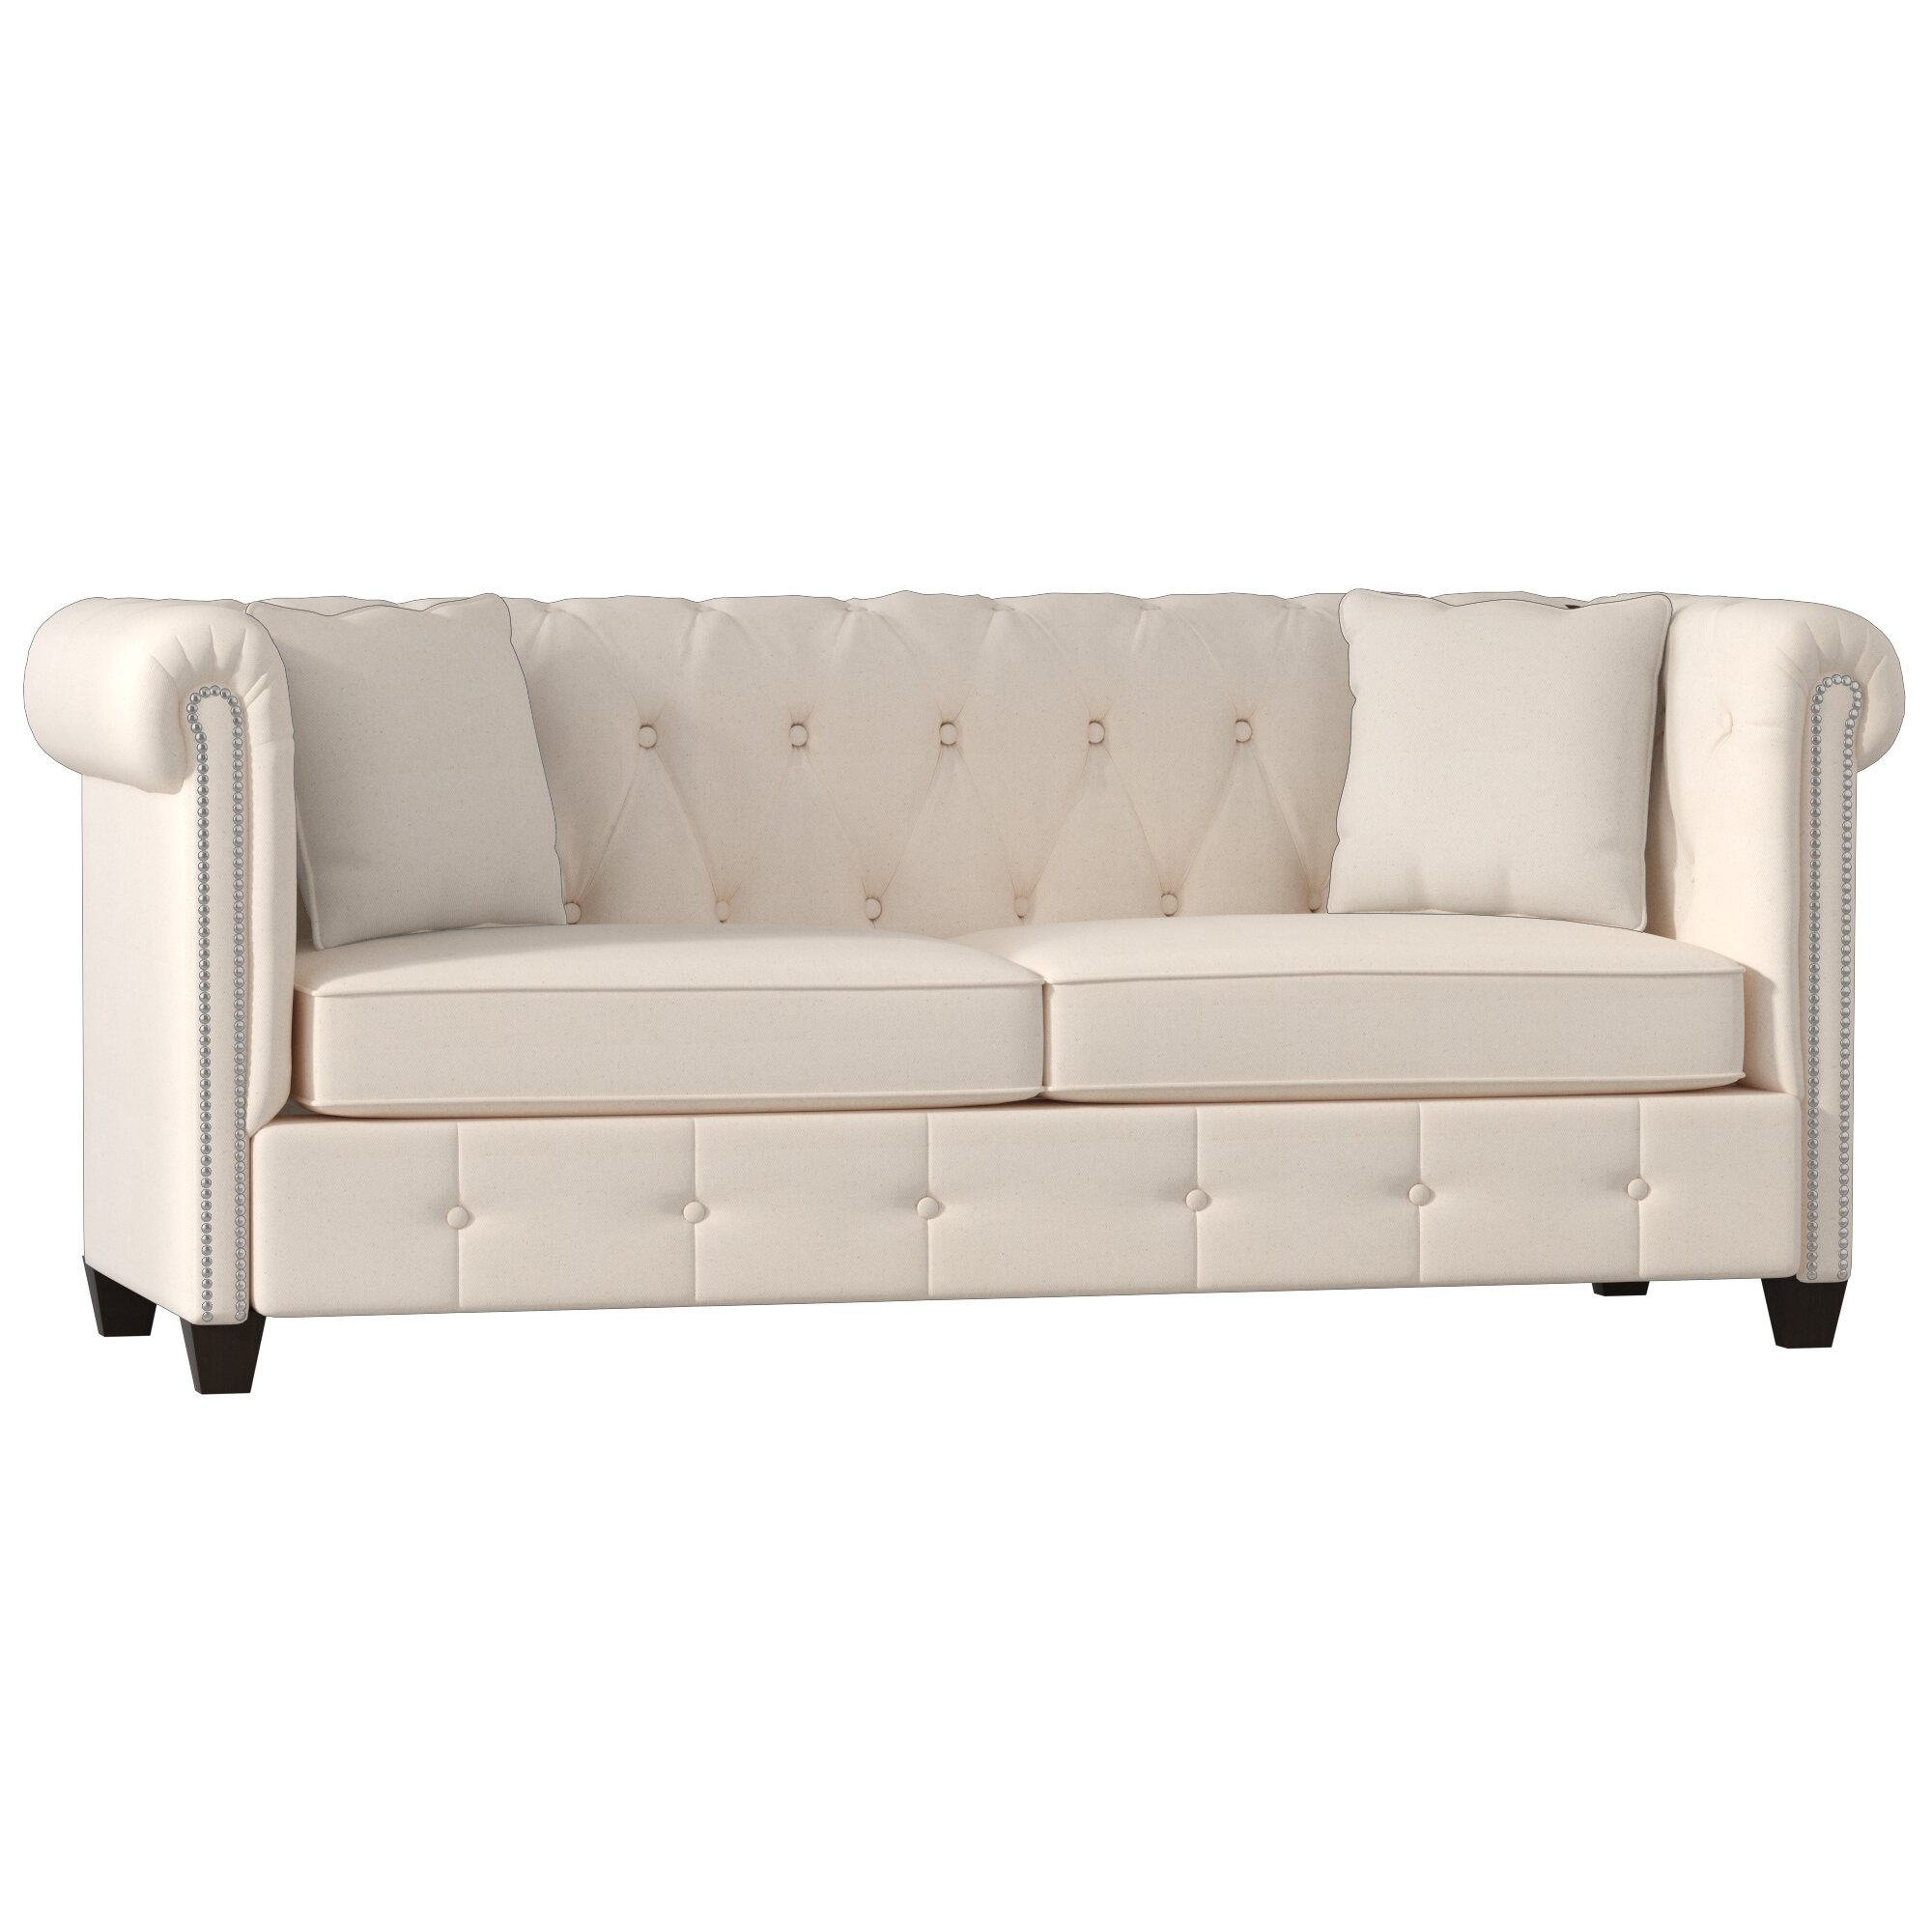 Wayfair Custom Upholstery Josephine Tufted Chesterfield Sofa & Reviews -